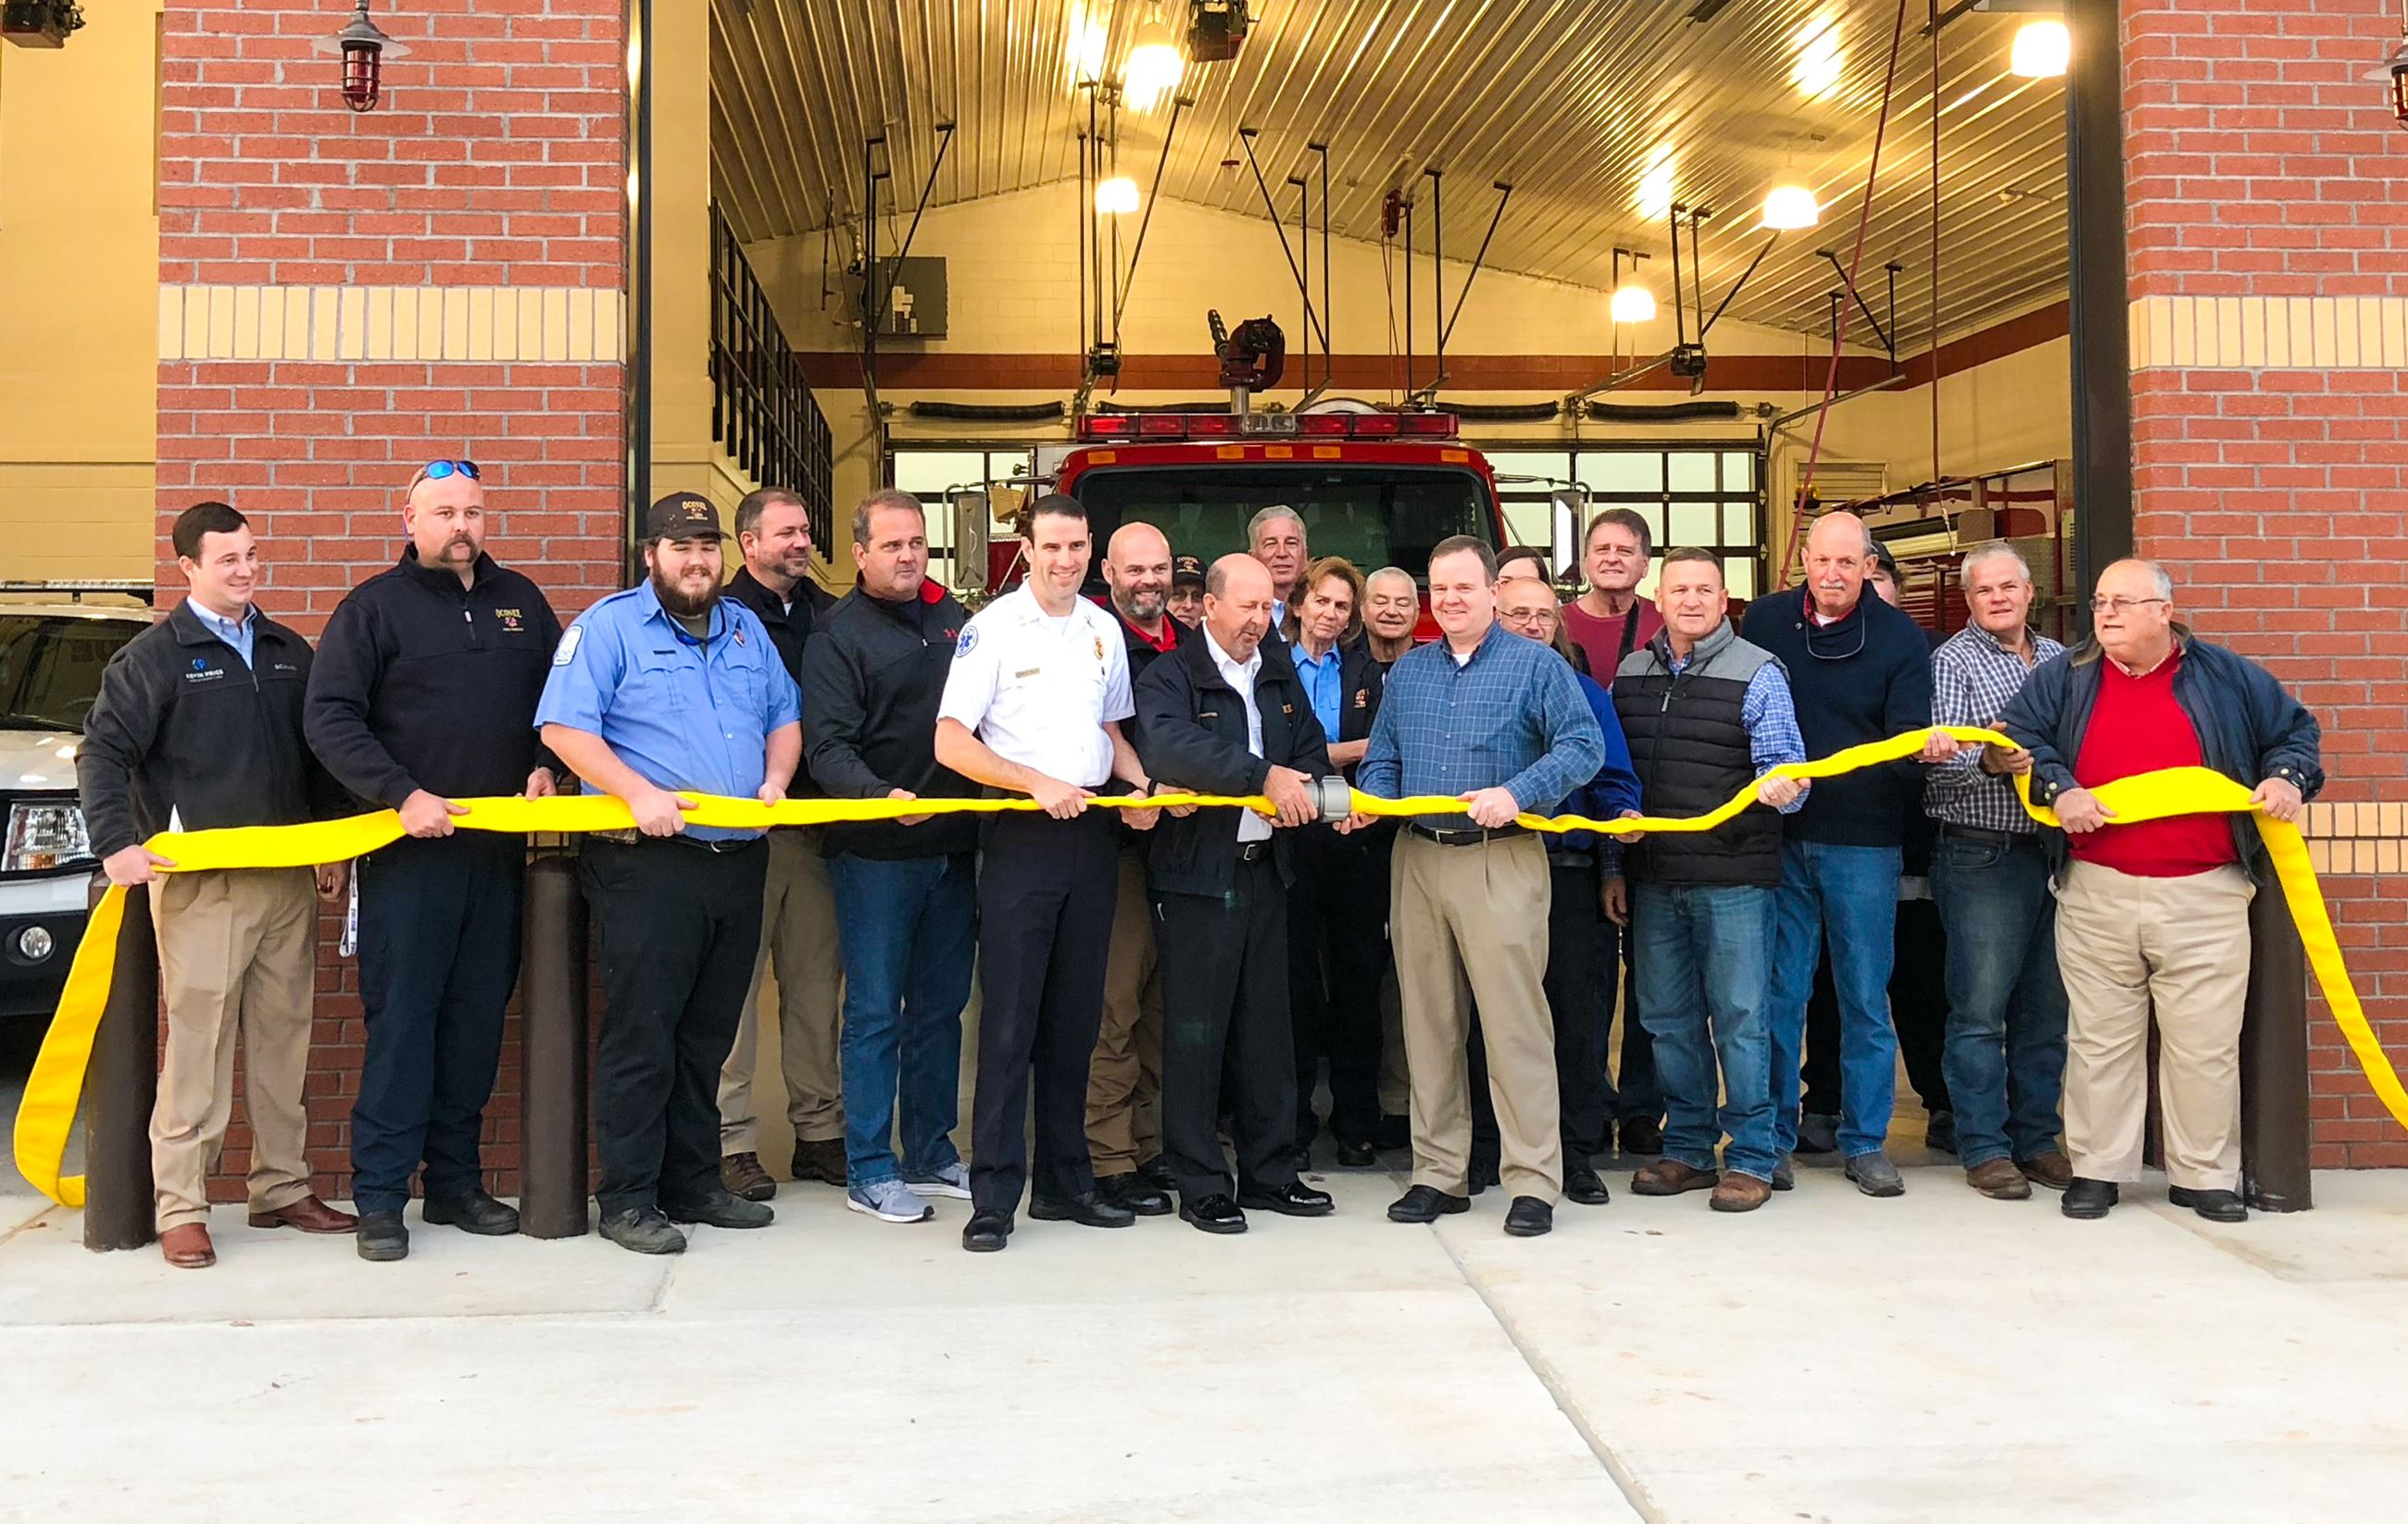 Photo of Oconee County Officials Uncoupling Fire Hose to Dedicate Fire Station 8